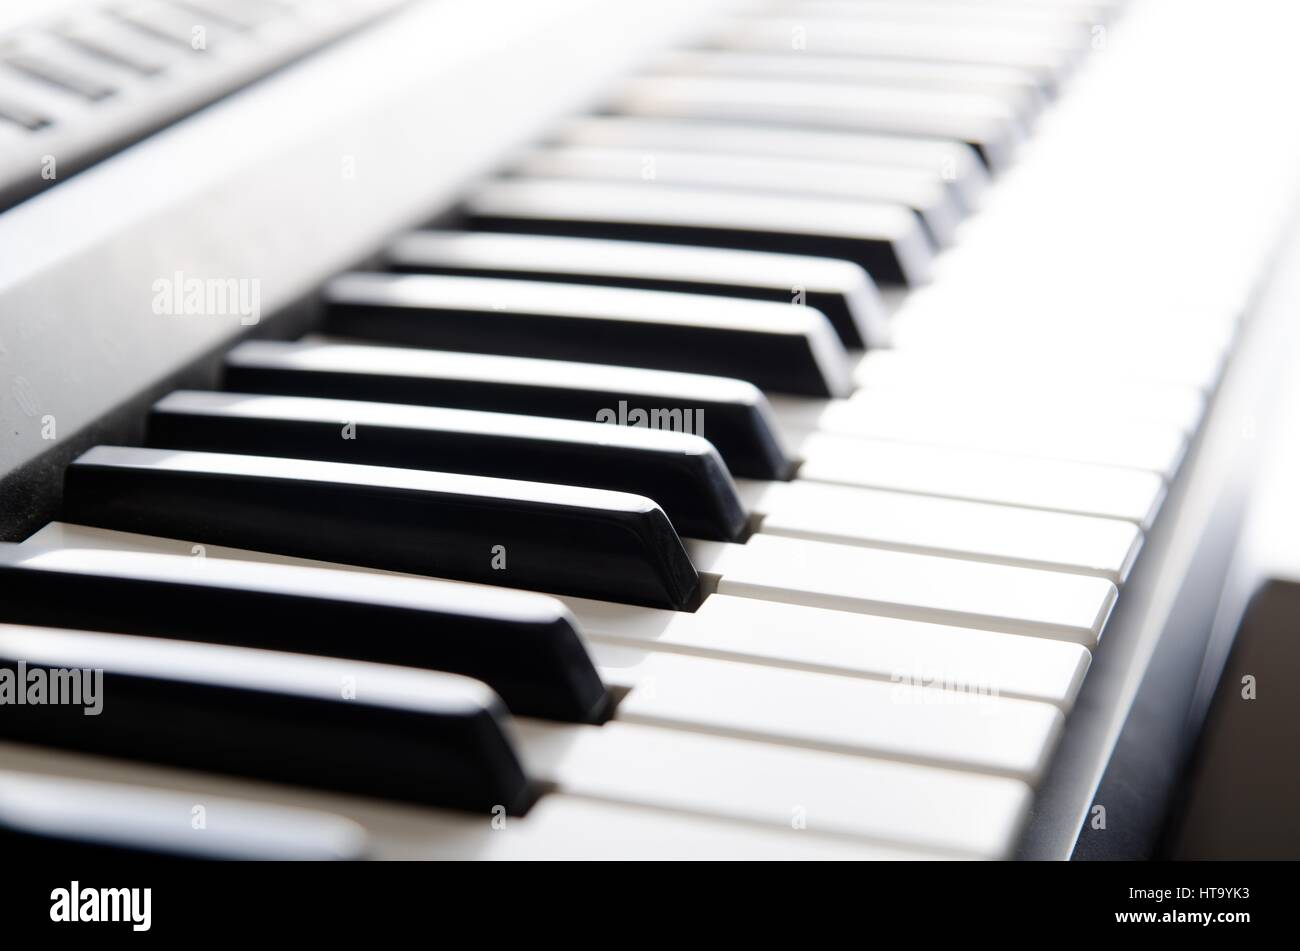 Piano keys of electronic keyboard instrument. Close up photo - Stock Image